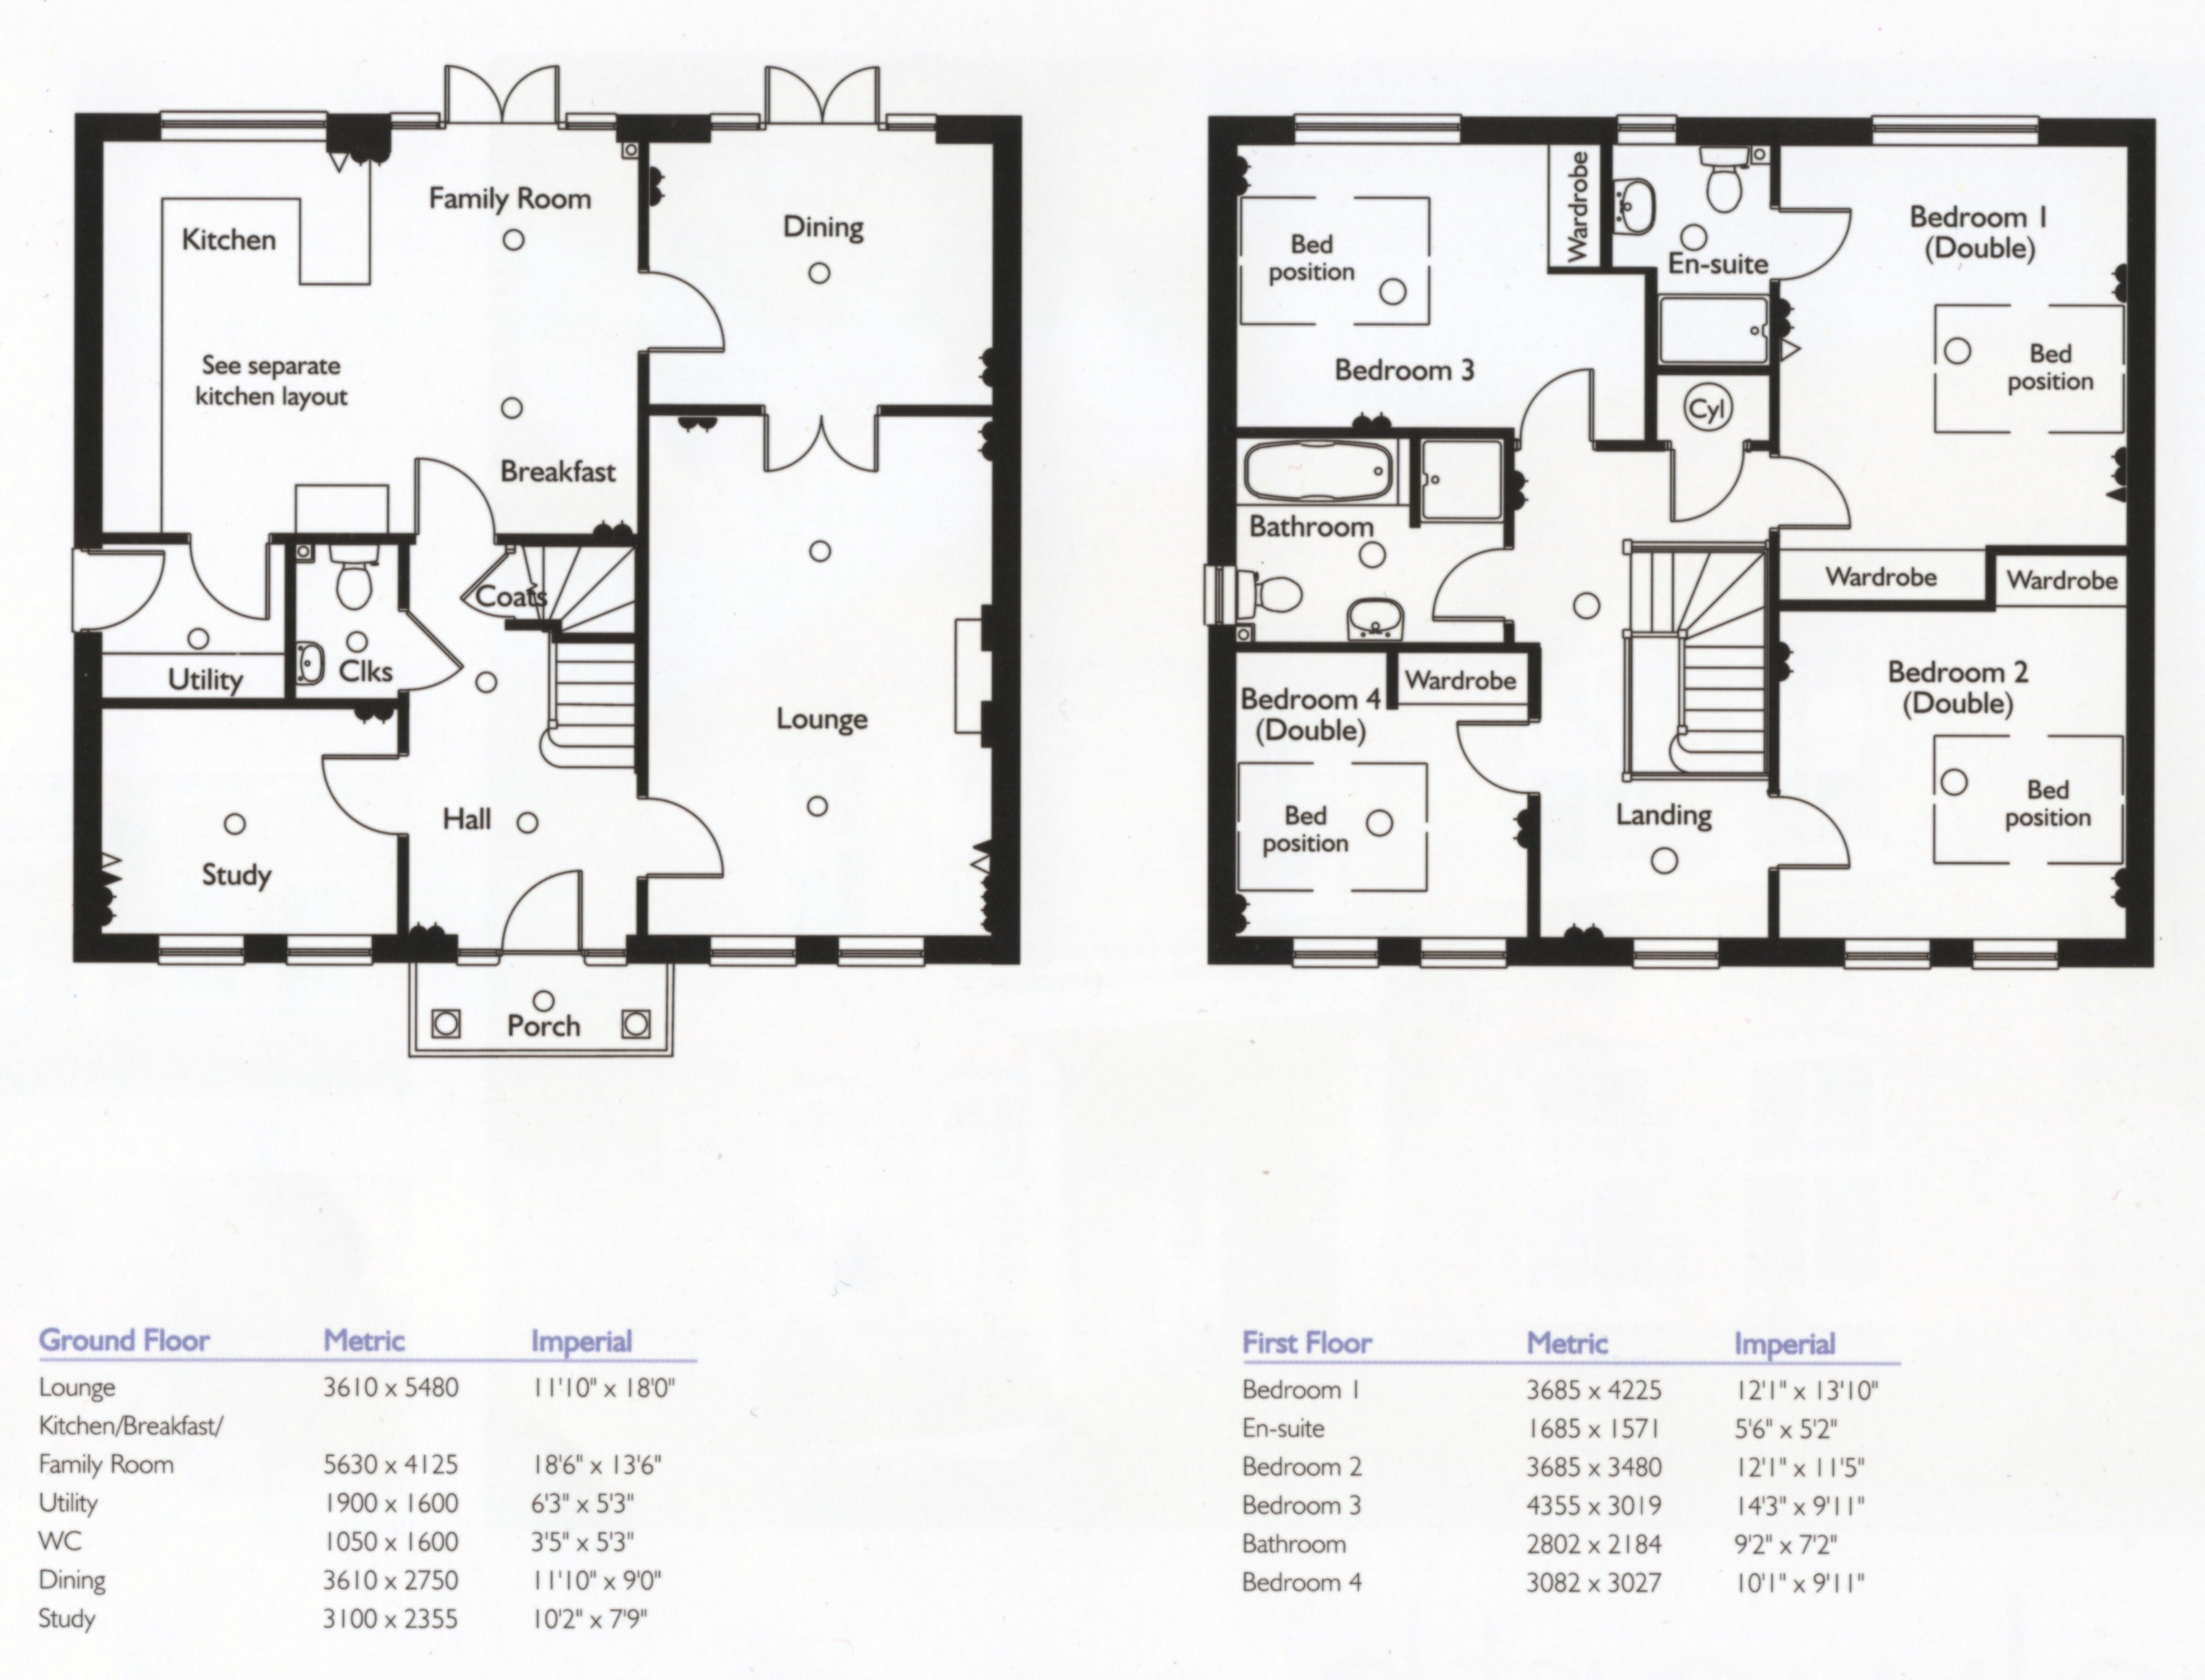 Bianchi family house floor plans bedroom ideas new house Family home floor plans